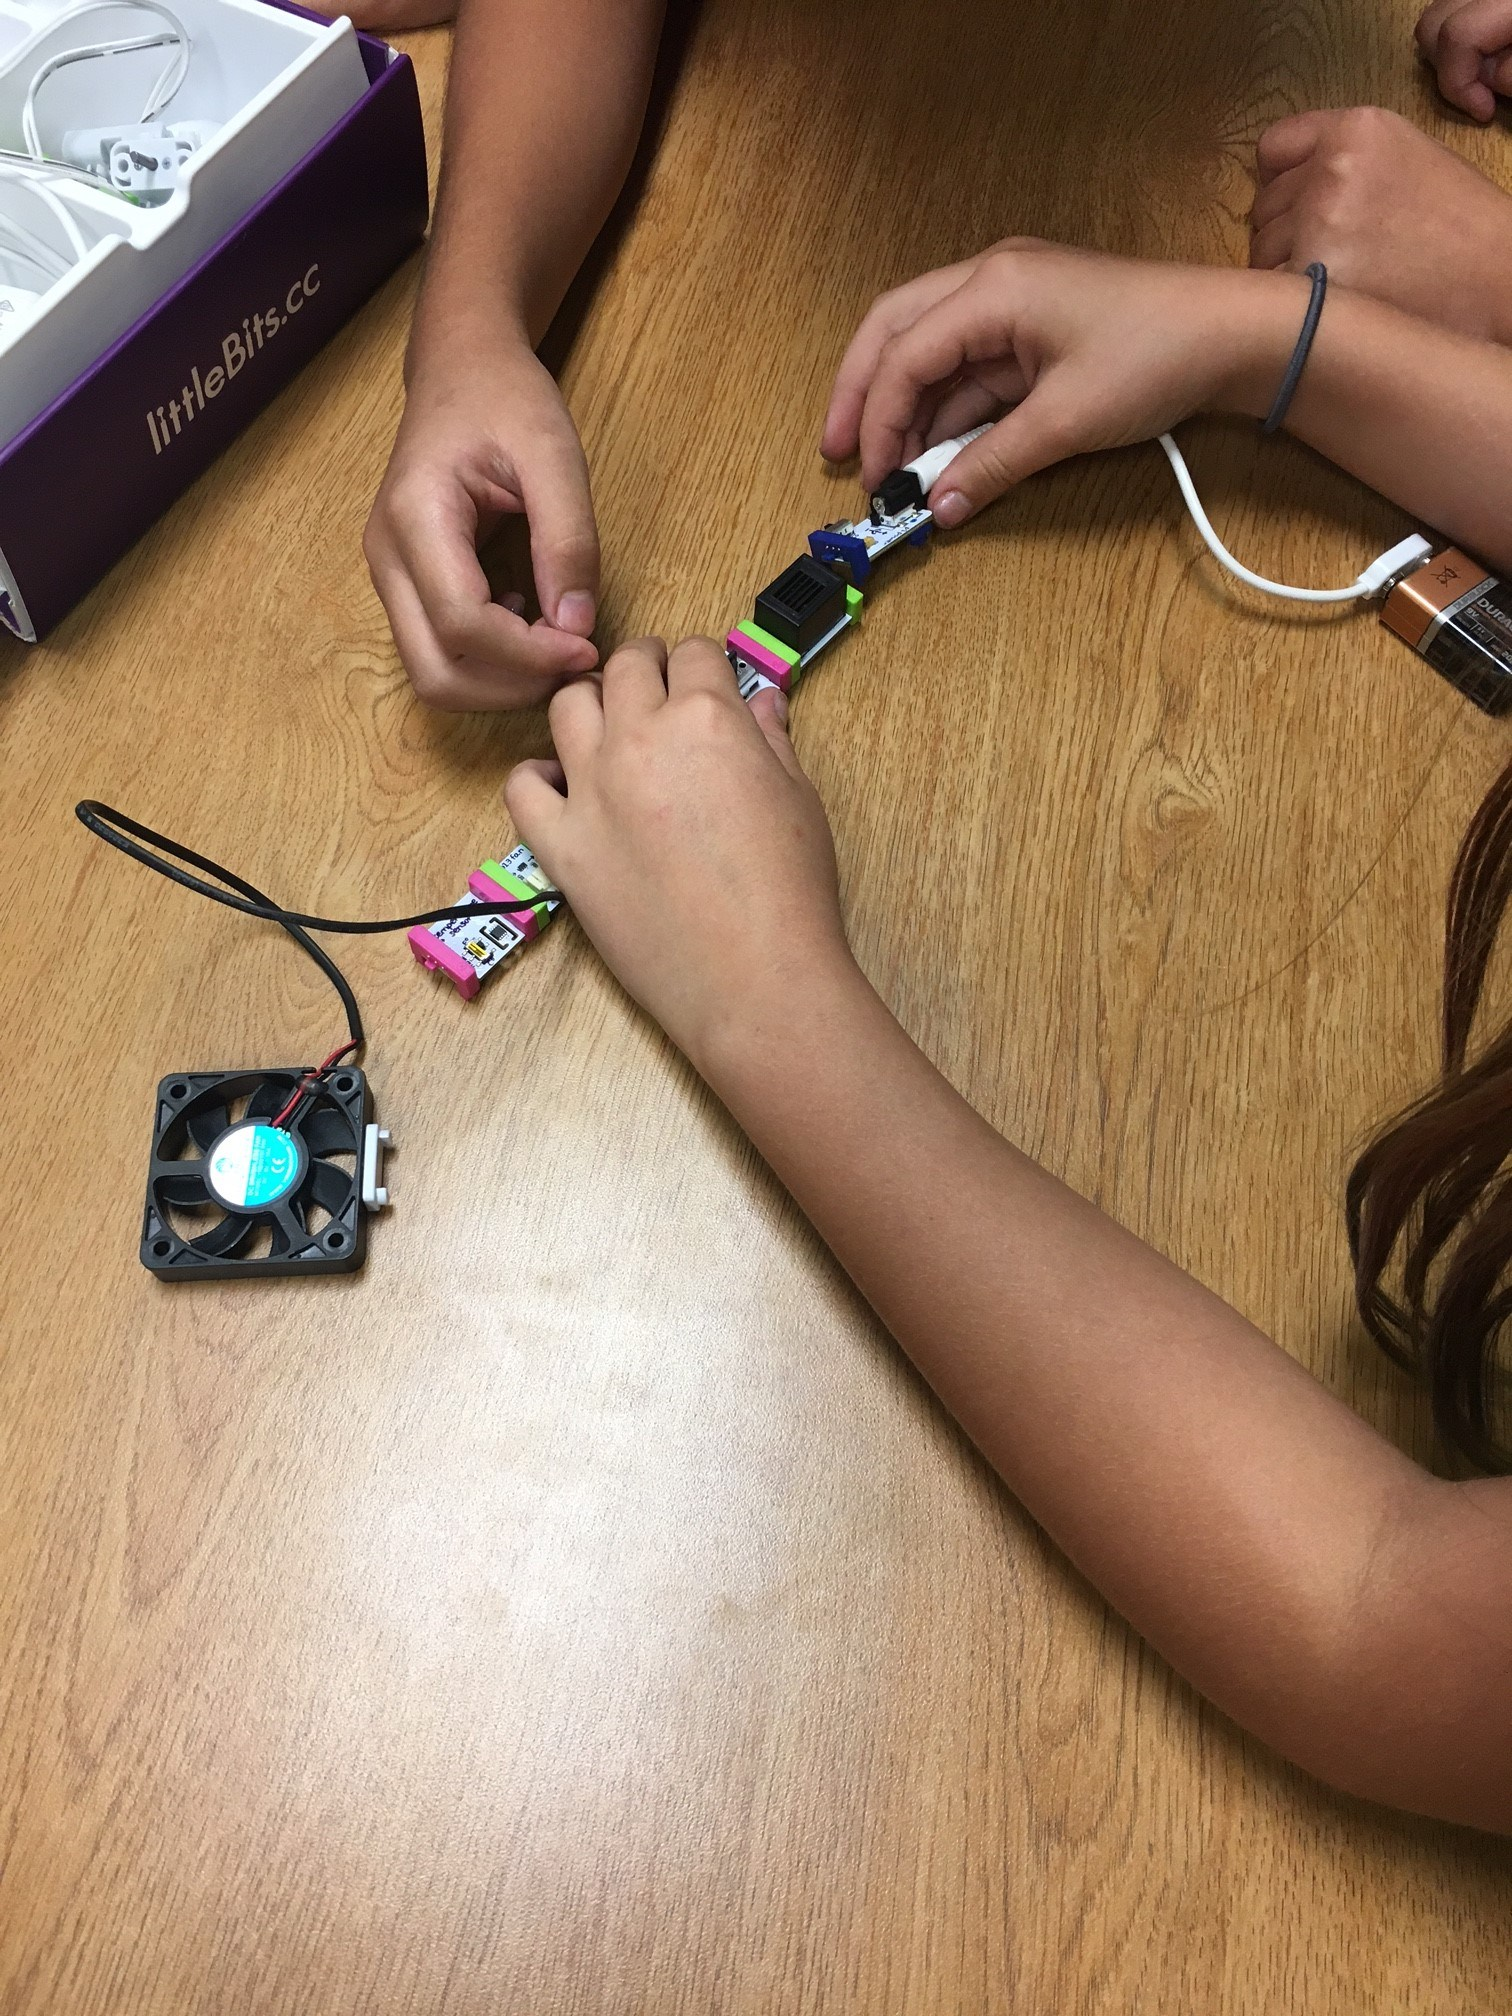 Working with littleBits Circuit Board Kits